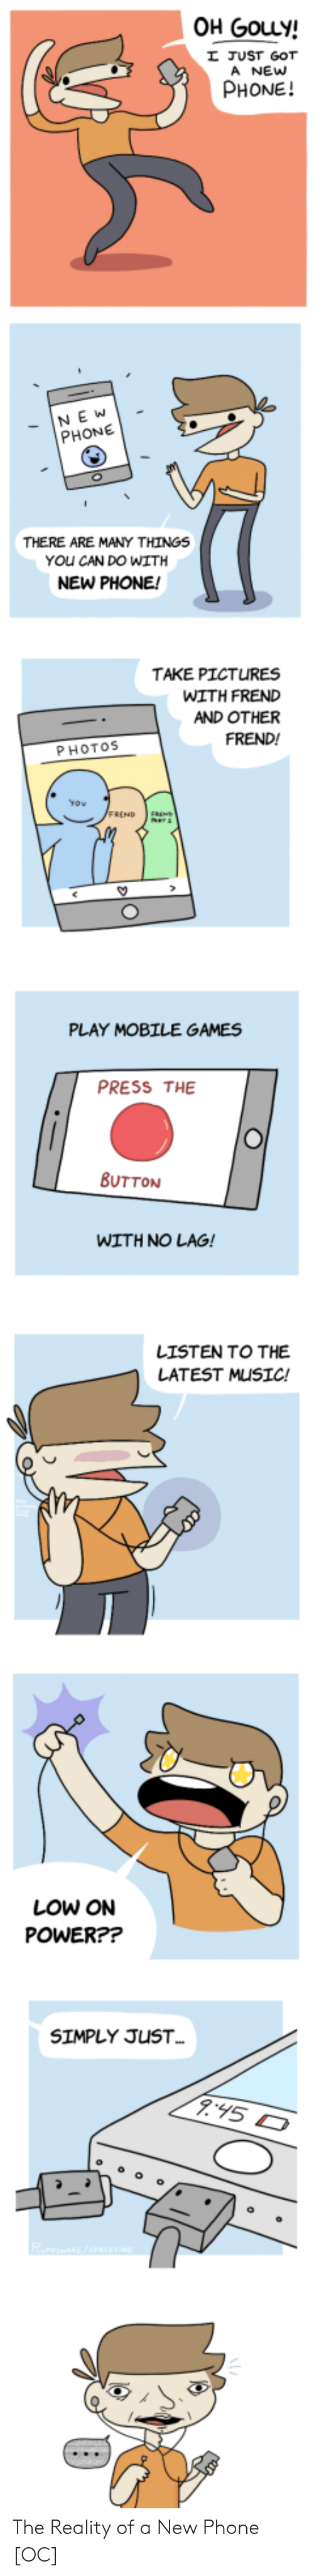 new phone: OH GouLy!  JUST GOT  A NEw  PHONE!  NE W  PHONE  THERE ARE MANY THINGS  YOu CAN DO WITH  NEW PHONE!  TAKE PICTURES  WITH FRED  AND OTHER  FREND!  PHOTOS  PLAY MOBILE GAMES  PRESS THE  BUTTON  WITH NO LAG!  LISTEN TO THE  LATEST MUSIC!  LOW ON  POWER??  SIMPLY JUST The Reality of a New Phone [OC]